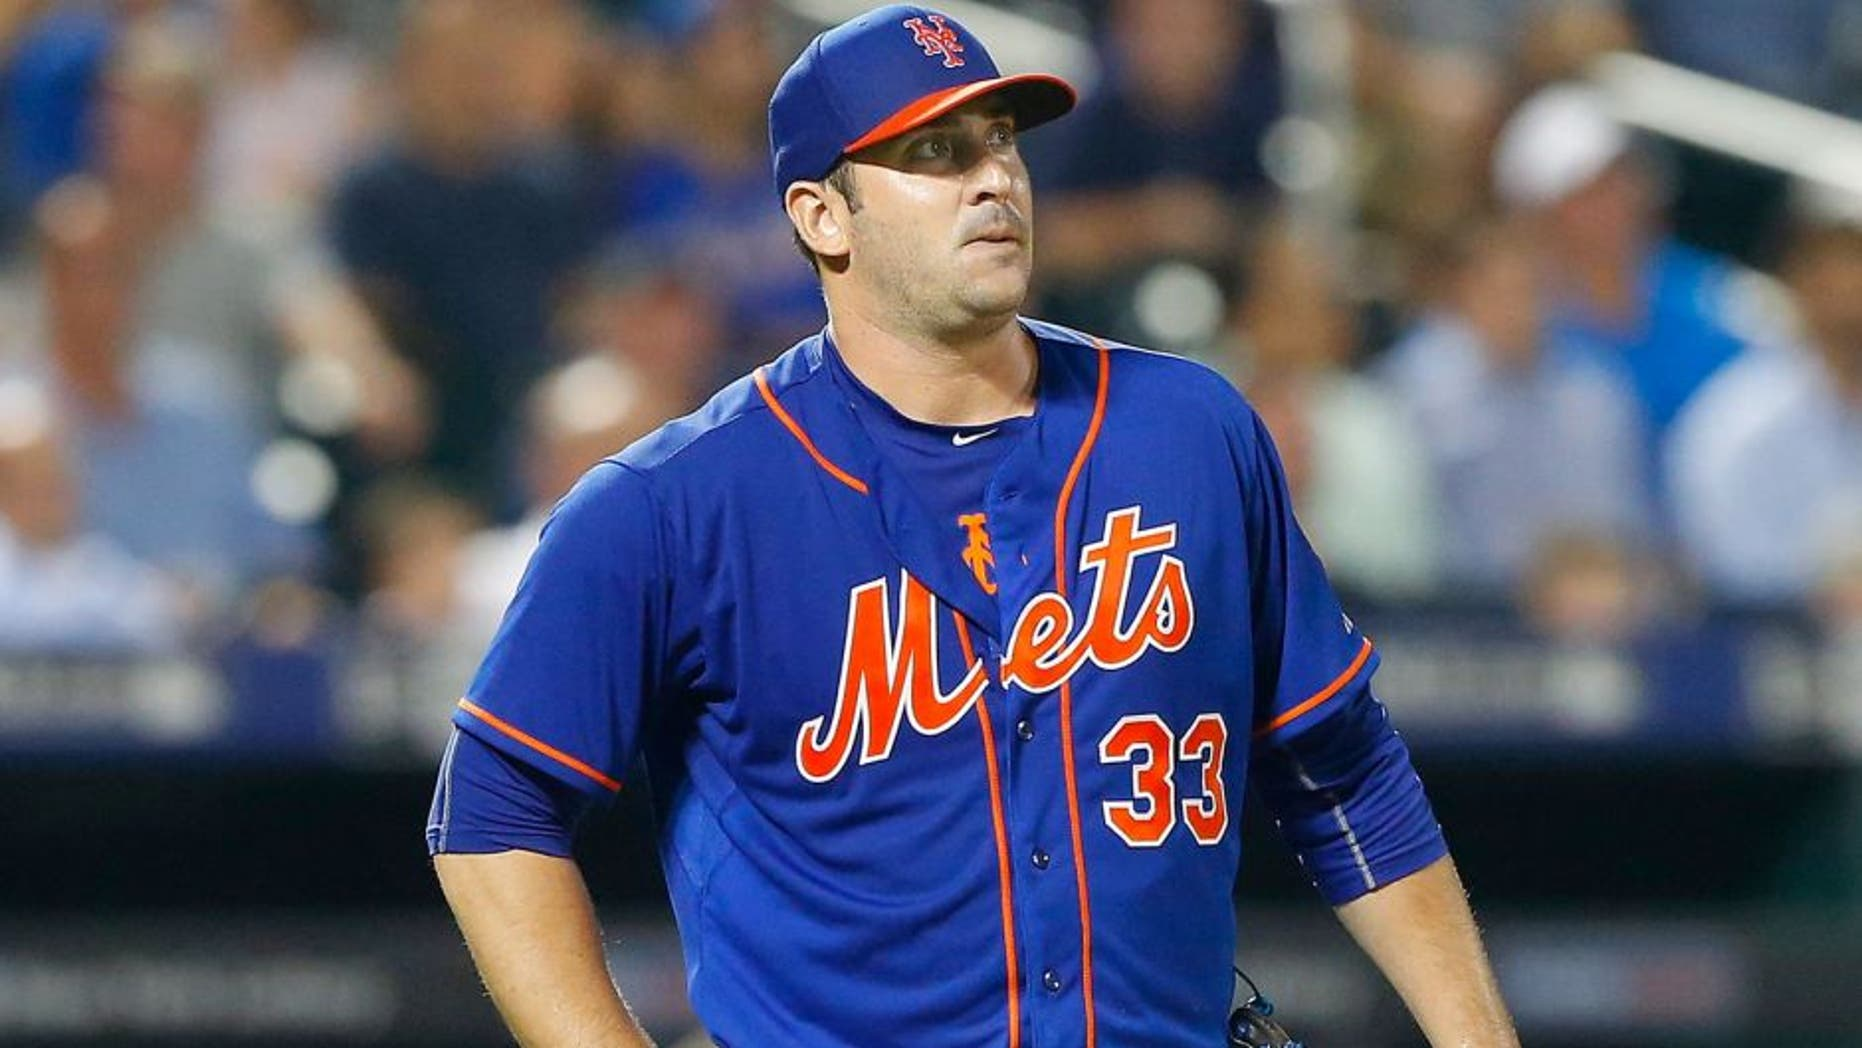 NEW YORK, NY - SEPTEMBER 02: Matt Harvey #33 of the New York Mets in action against the Philadelphia Phillies at Citi Field on September 2, 2015 in the Flushing neighborhood of the Queens borough of New York City. The Mets defeated the Phillies 9-4. (Photo by Jim McIsaac/Getty Images)